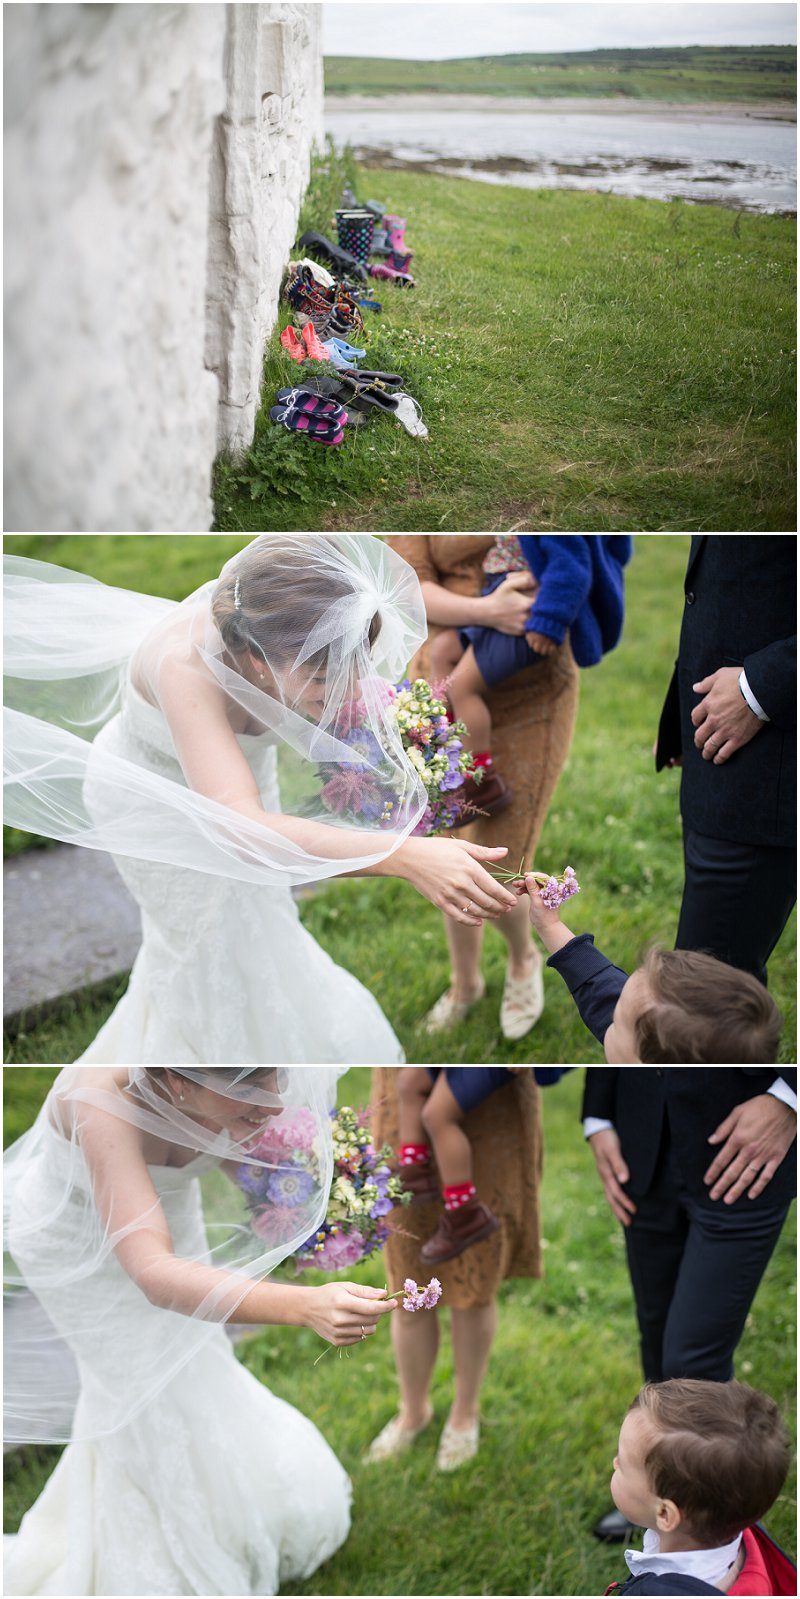 Shoes outside the Church and Boy Gives Bride Flowers at Anglesey Wedding